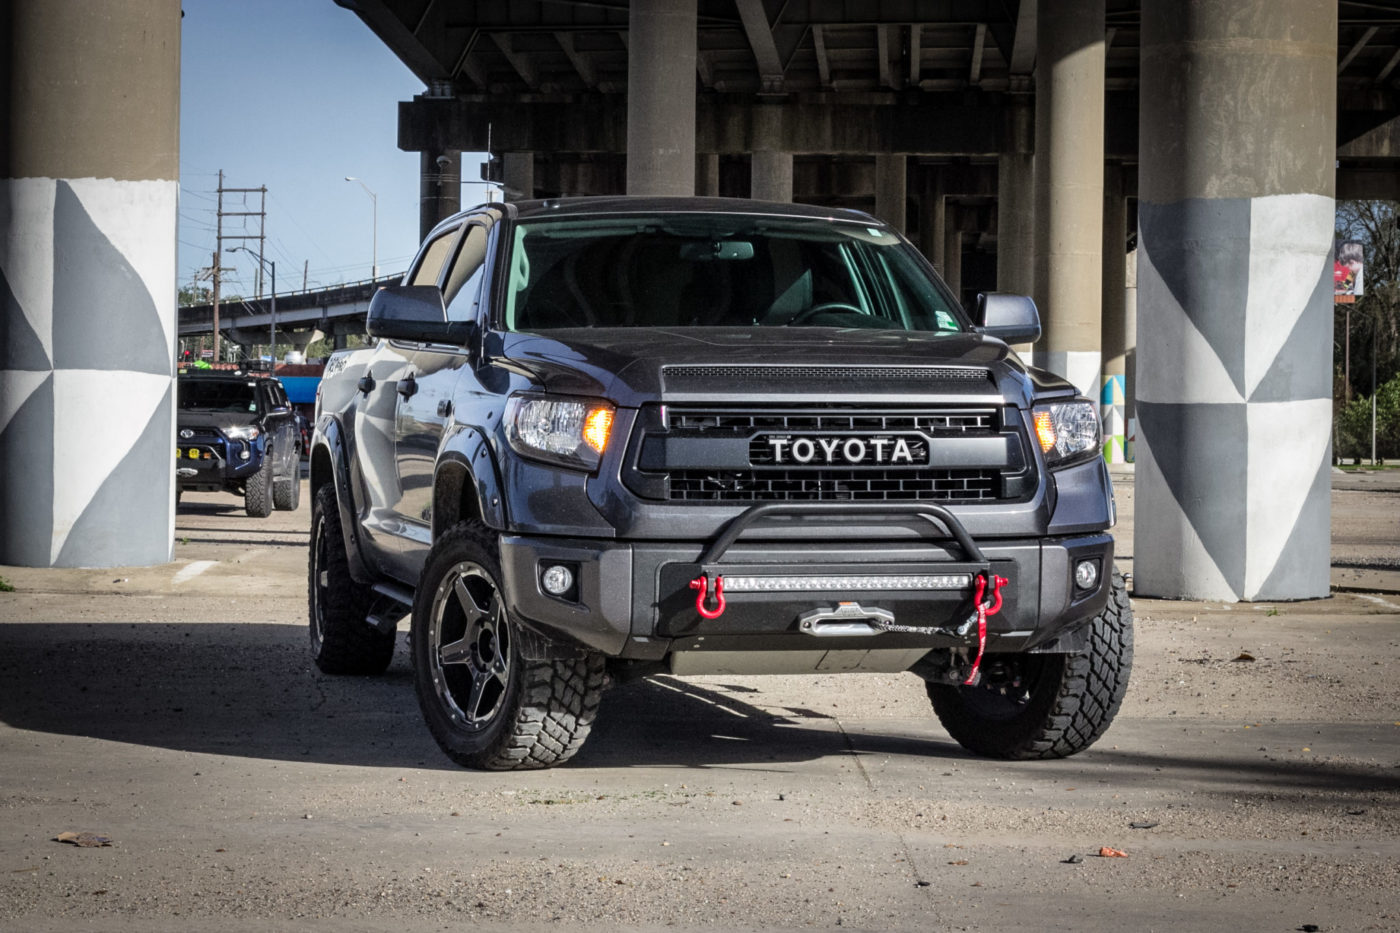 Trd Pro Tundra >> Southern Style offroad Toyota Tundra Toyota 4Runner Bumper